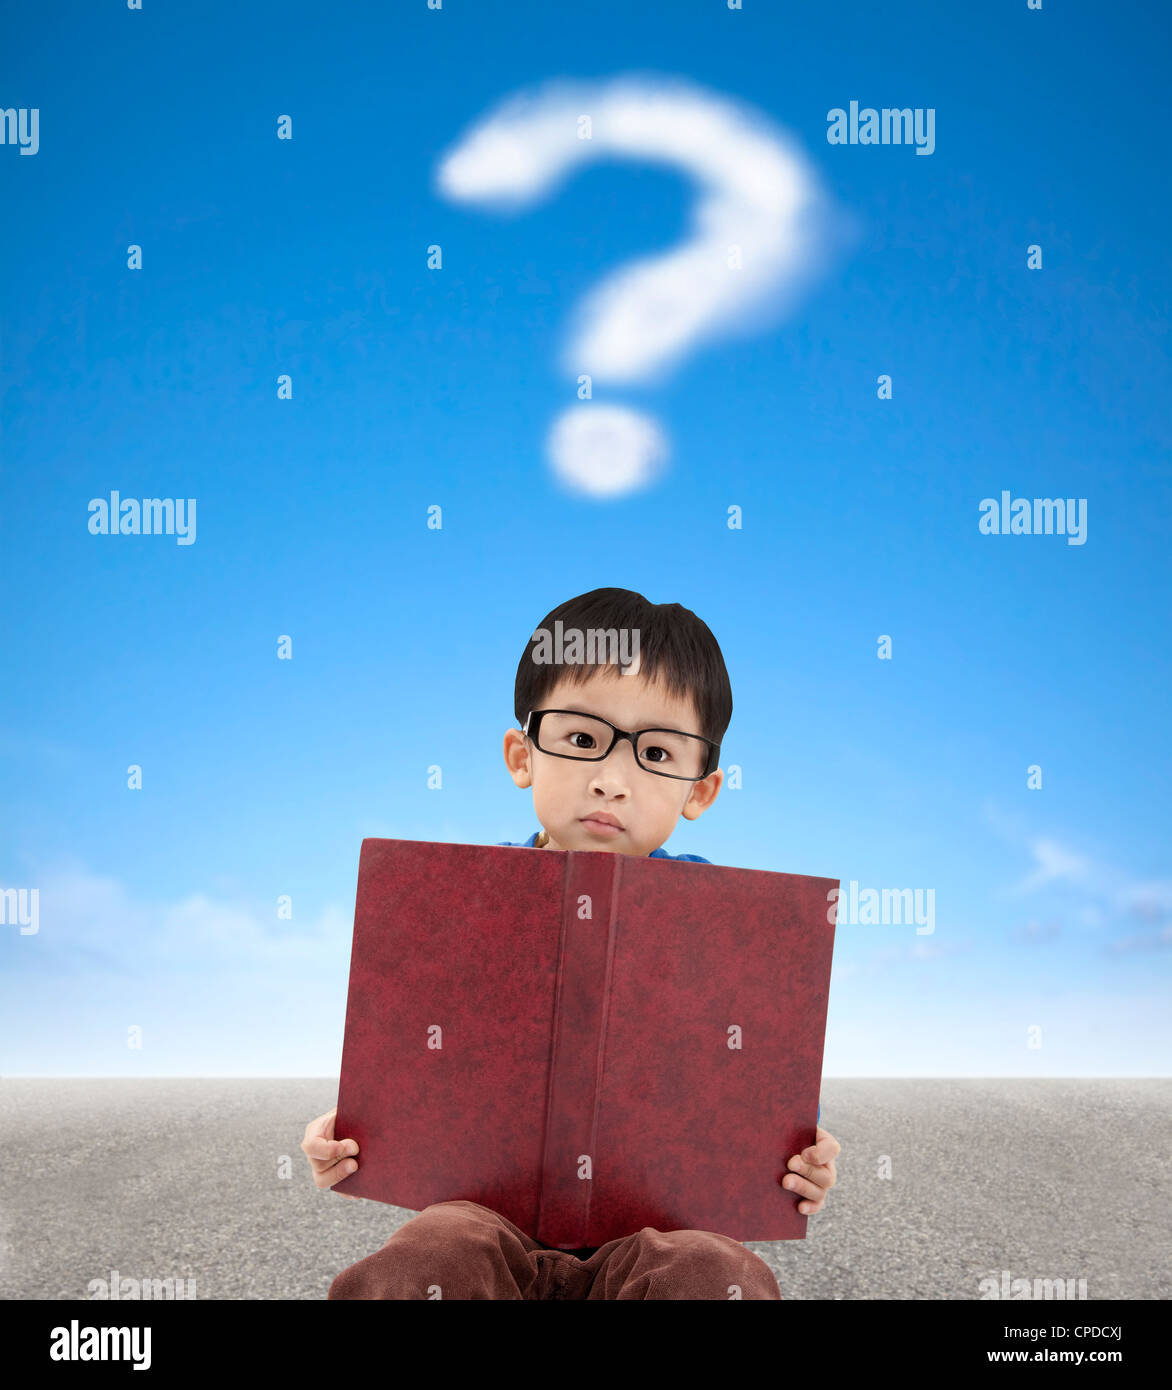 little boy holding book and question mark cloud background - Stock Image